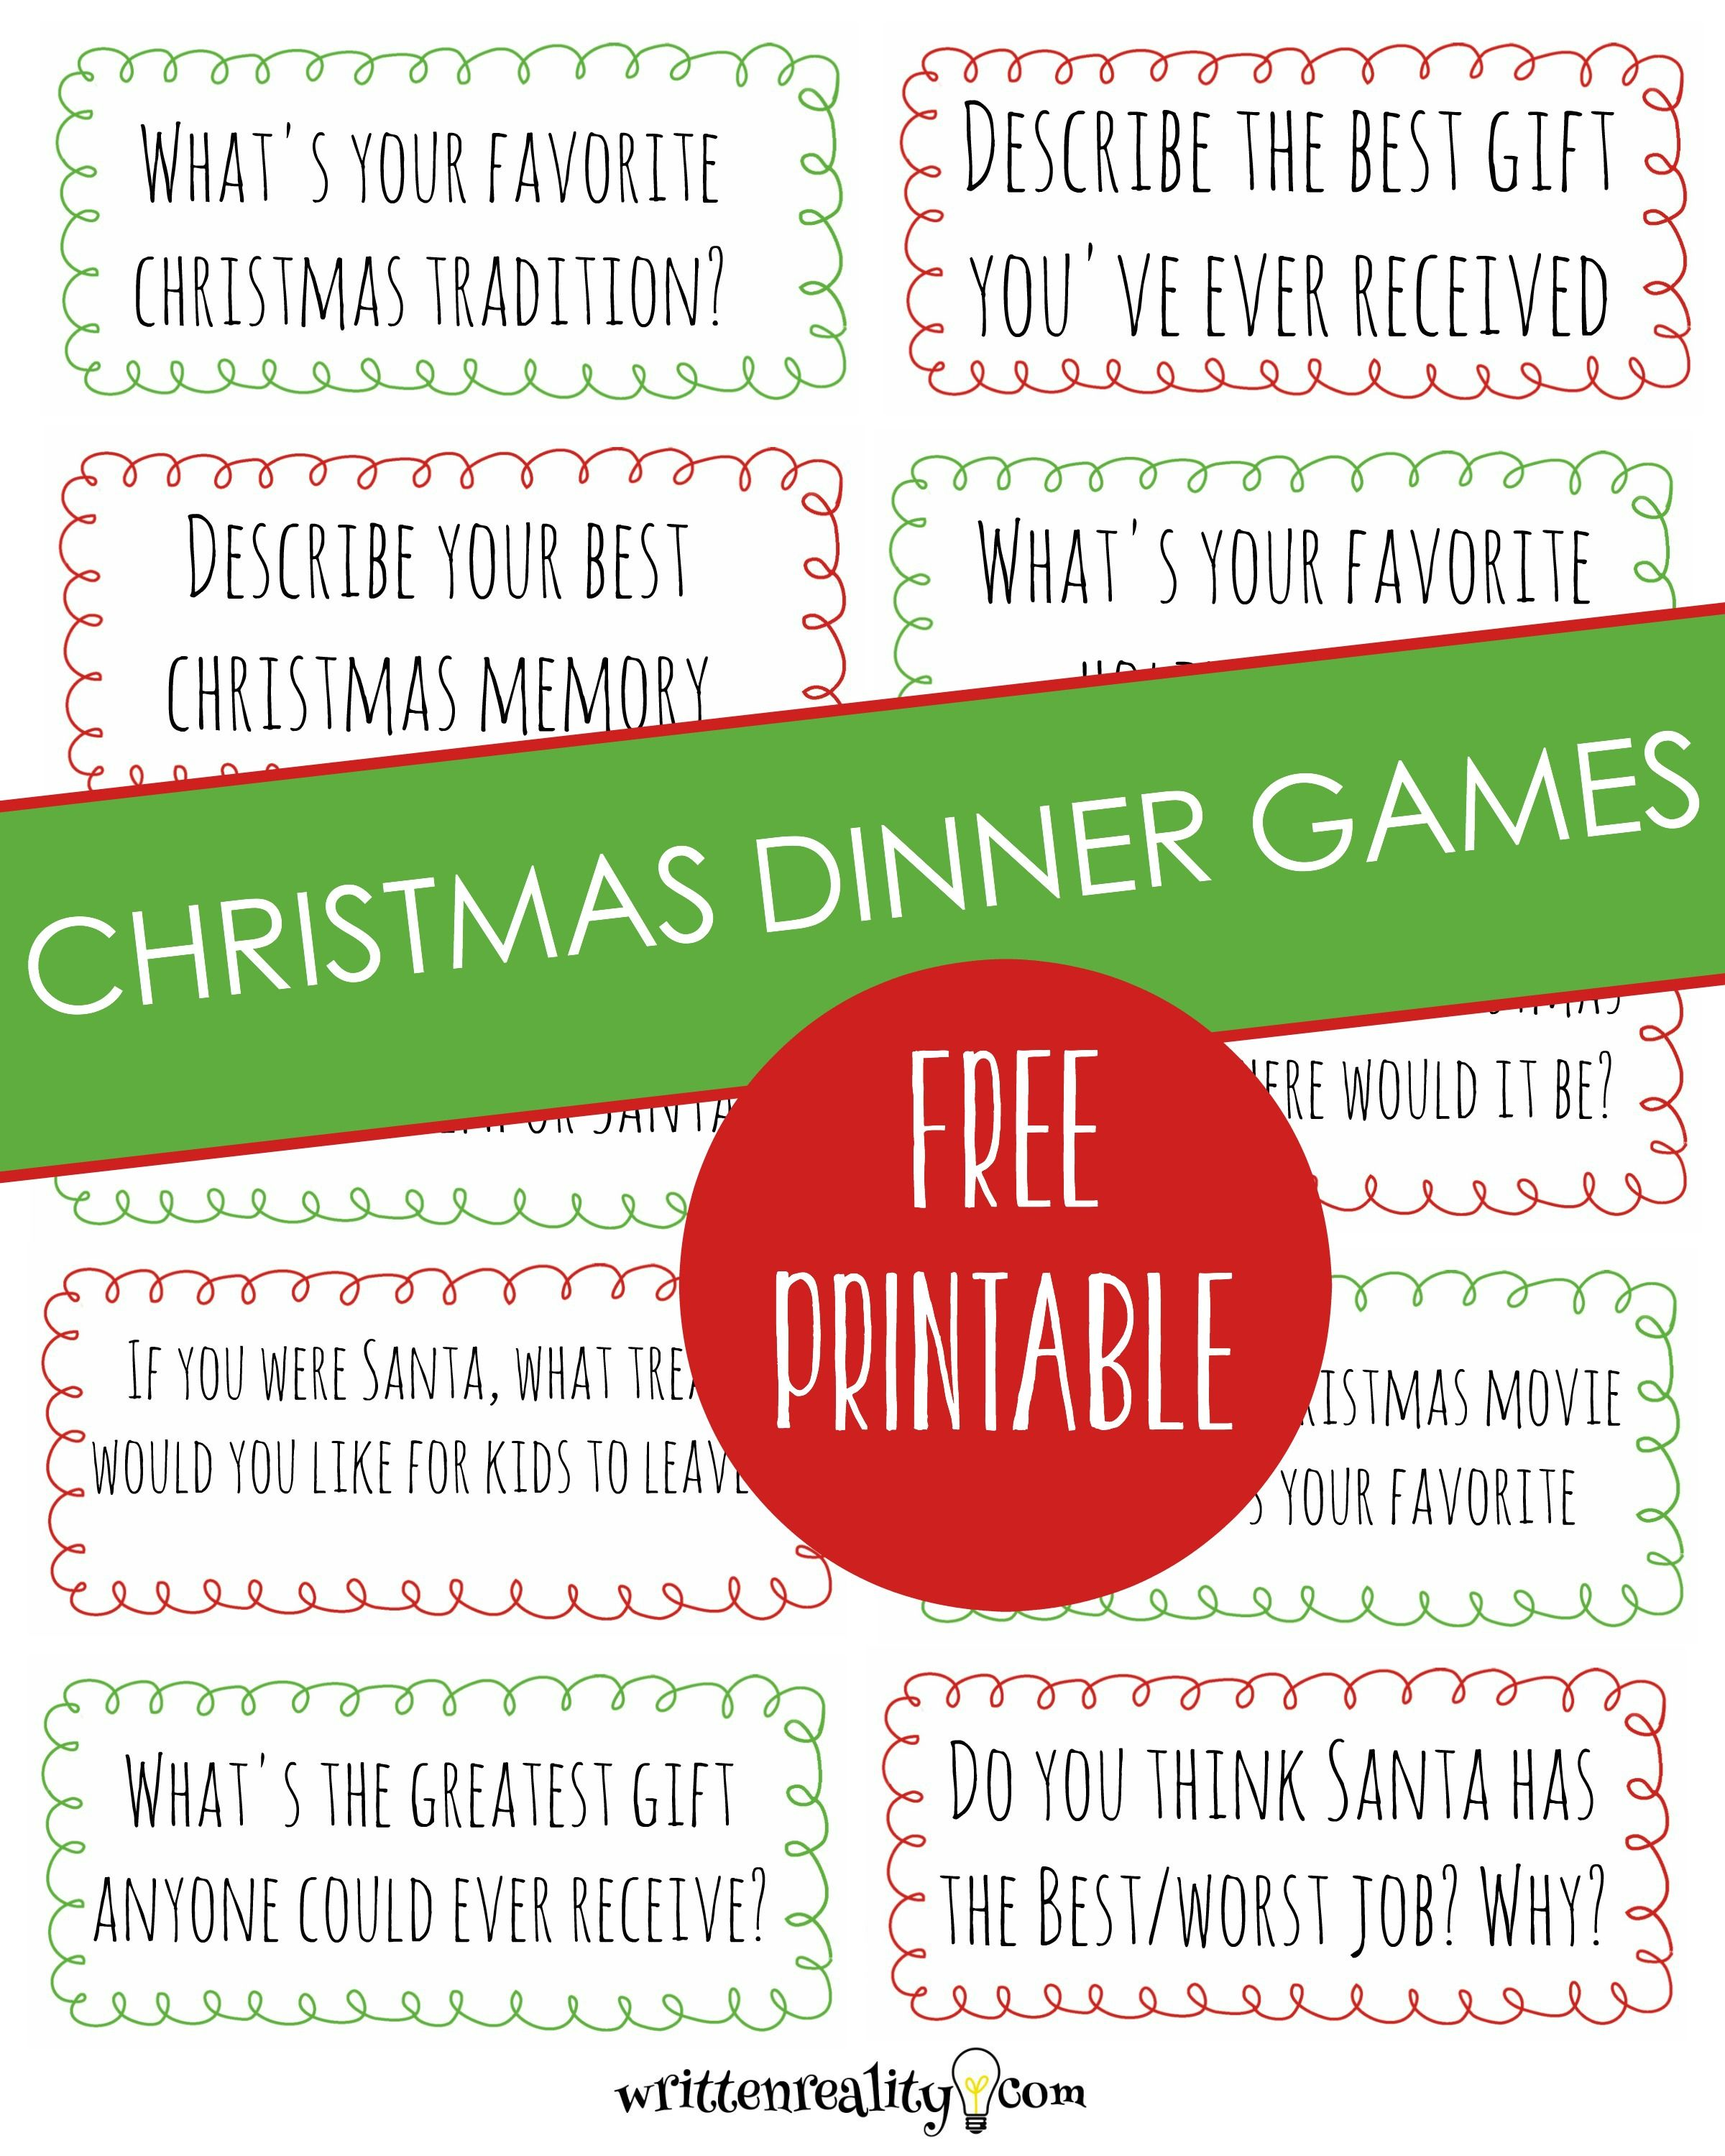 Celebrate This Year With A Free Christmas Dinner Game